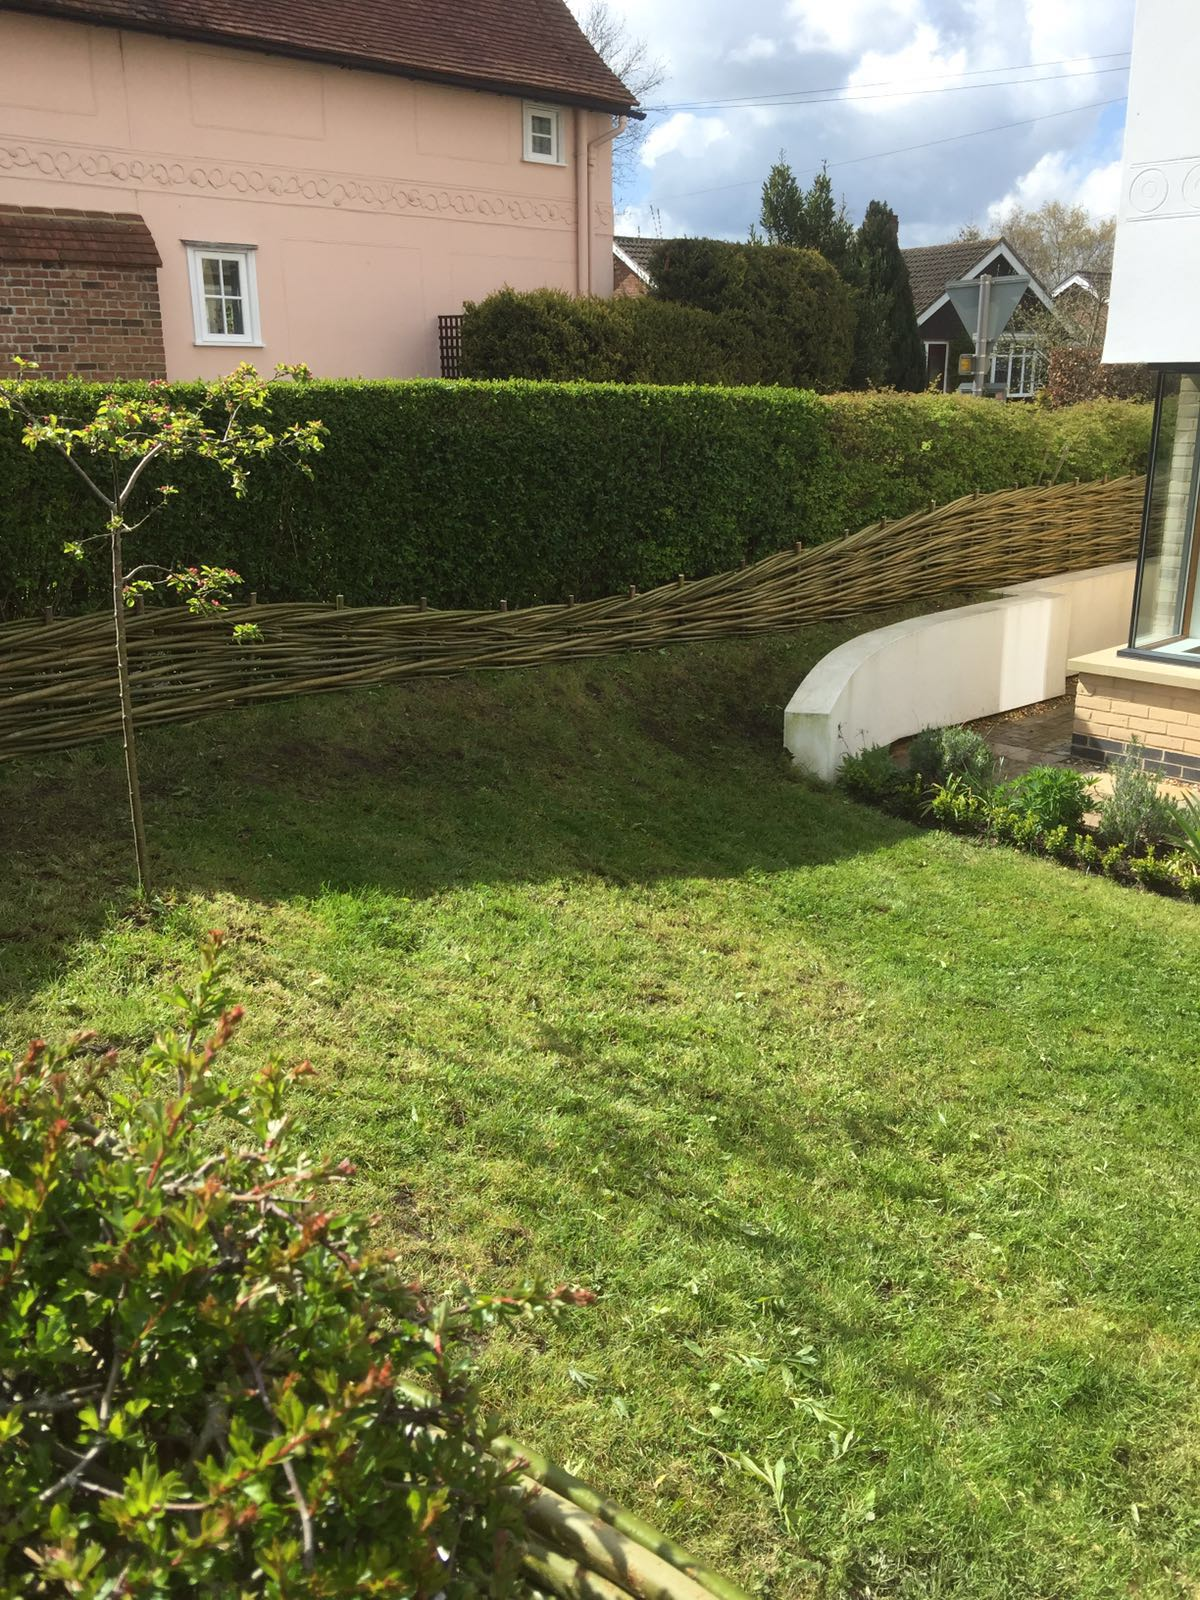 Gradual sloping willow fence